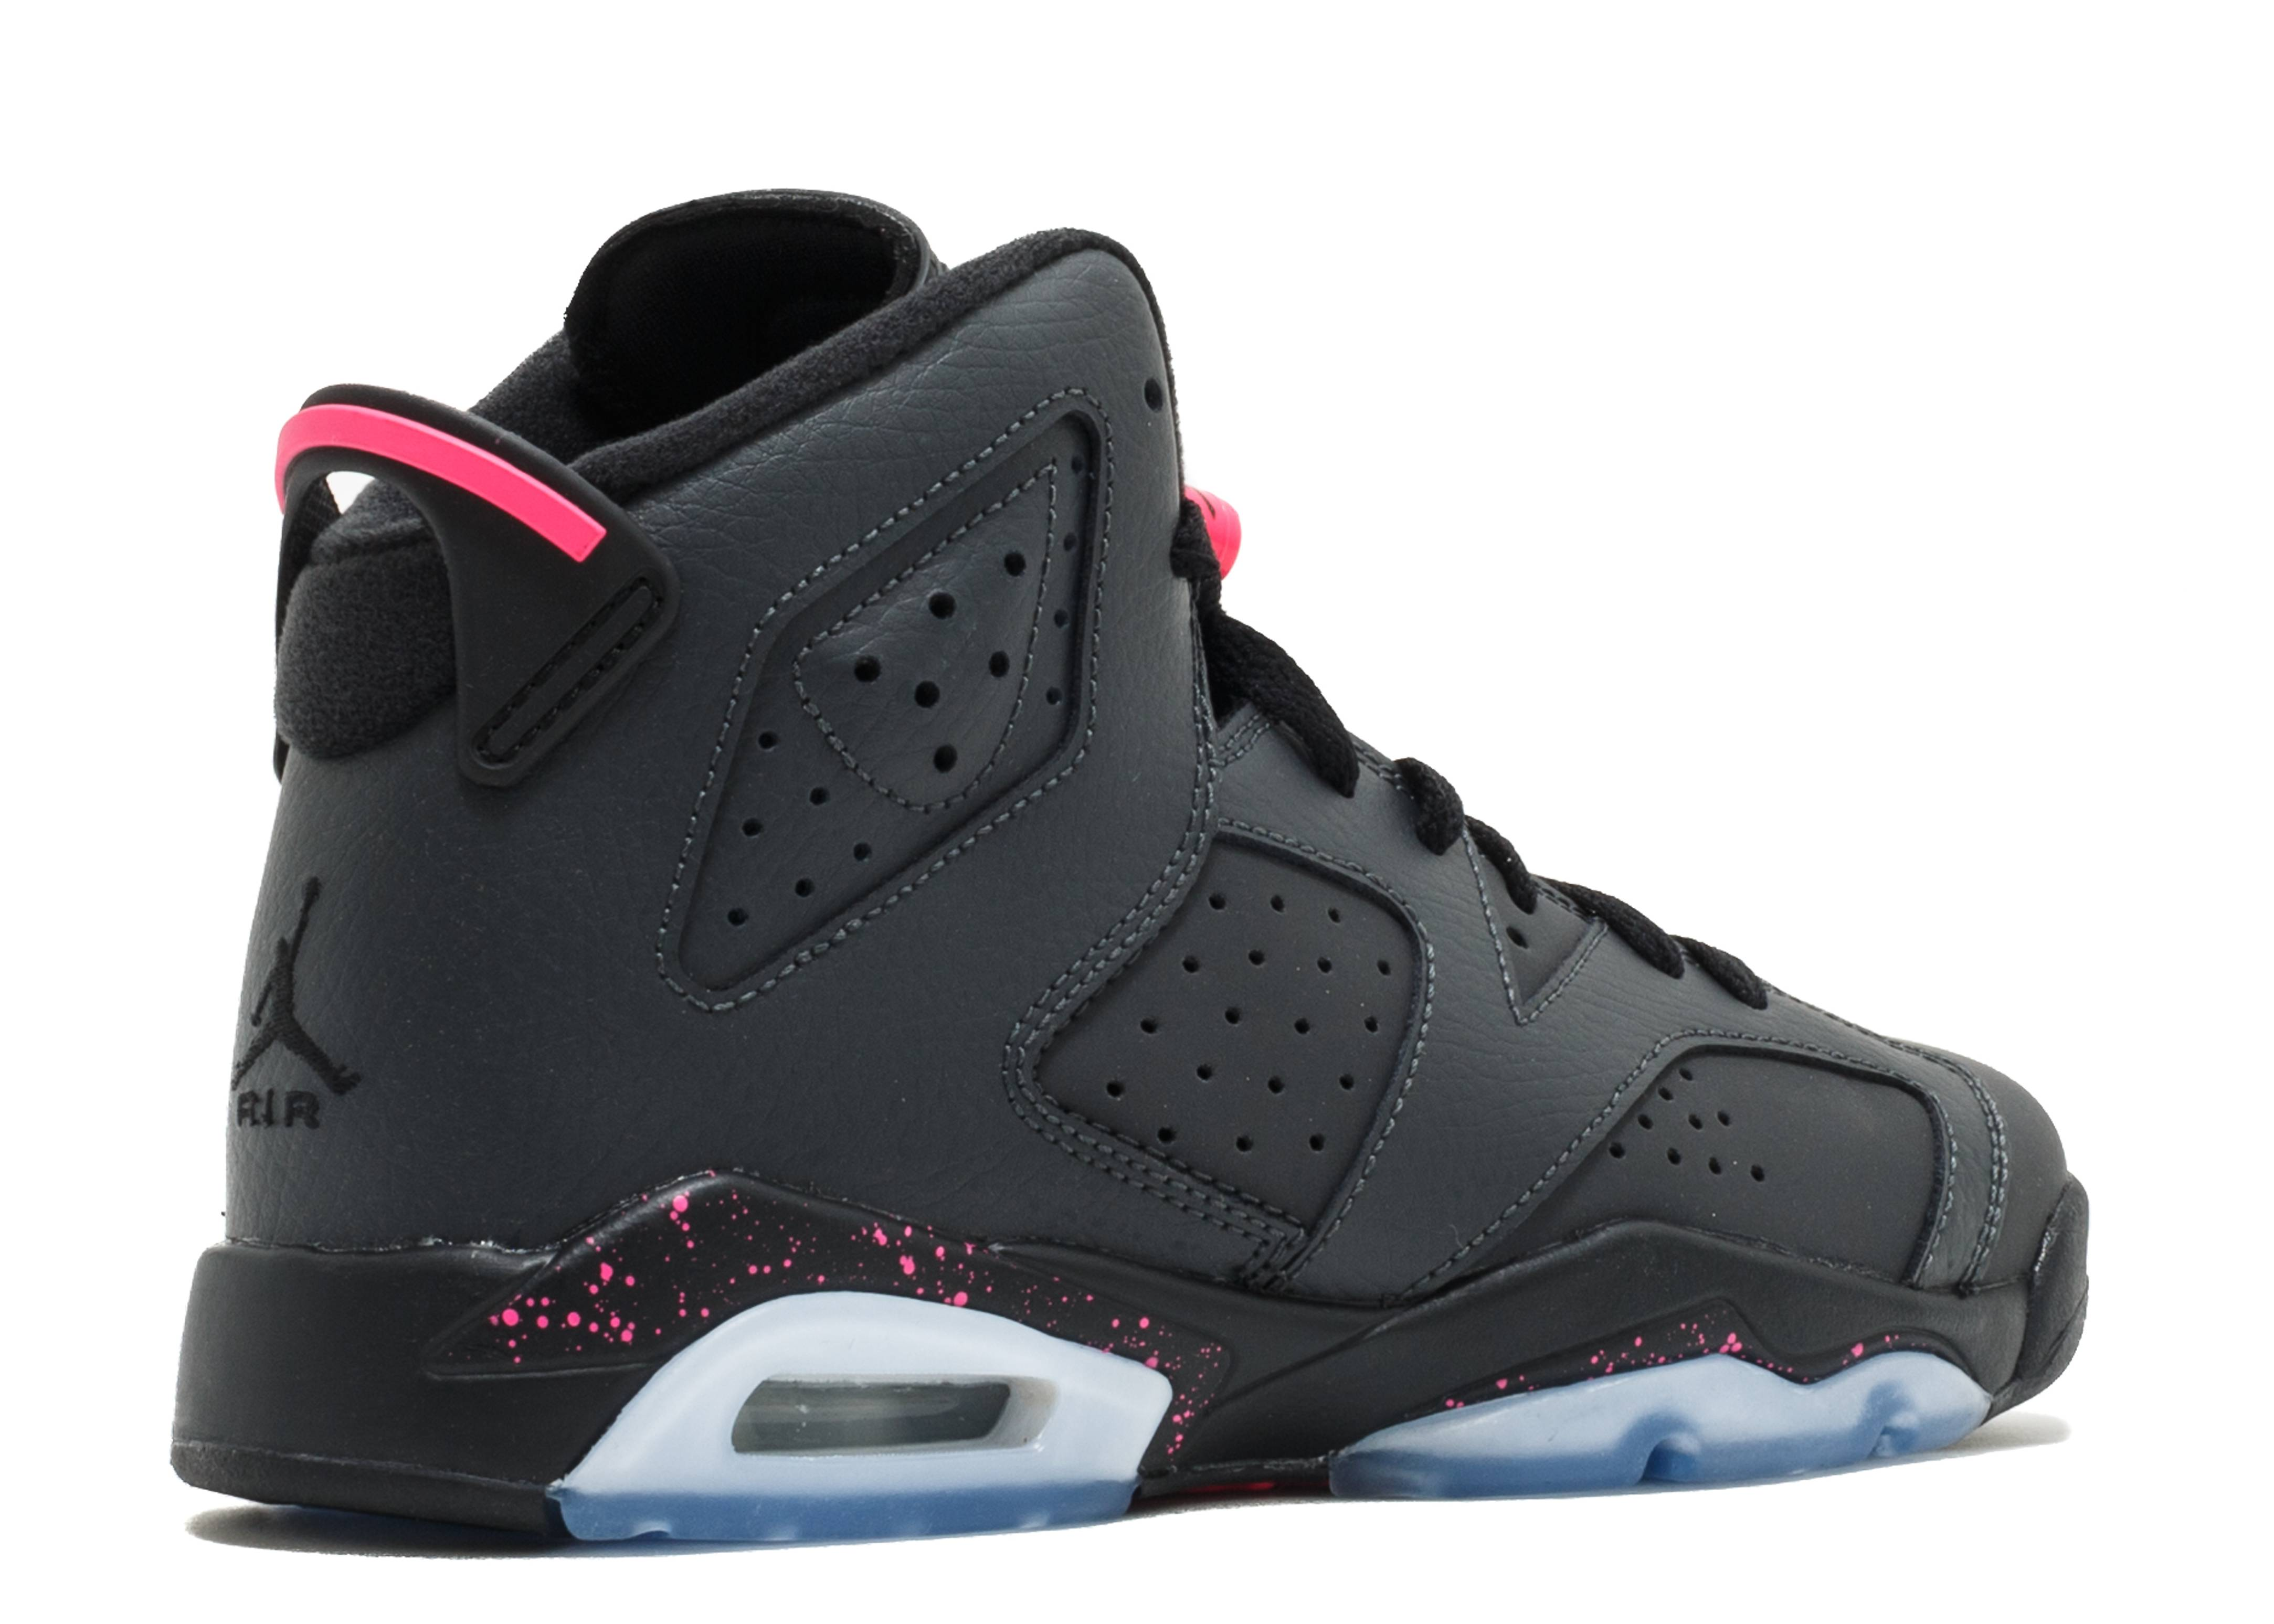 53e46587e9e ... coupon code for air jordan 6 retro gg gs hyper pink air jordan 543390  008 anthracite